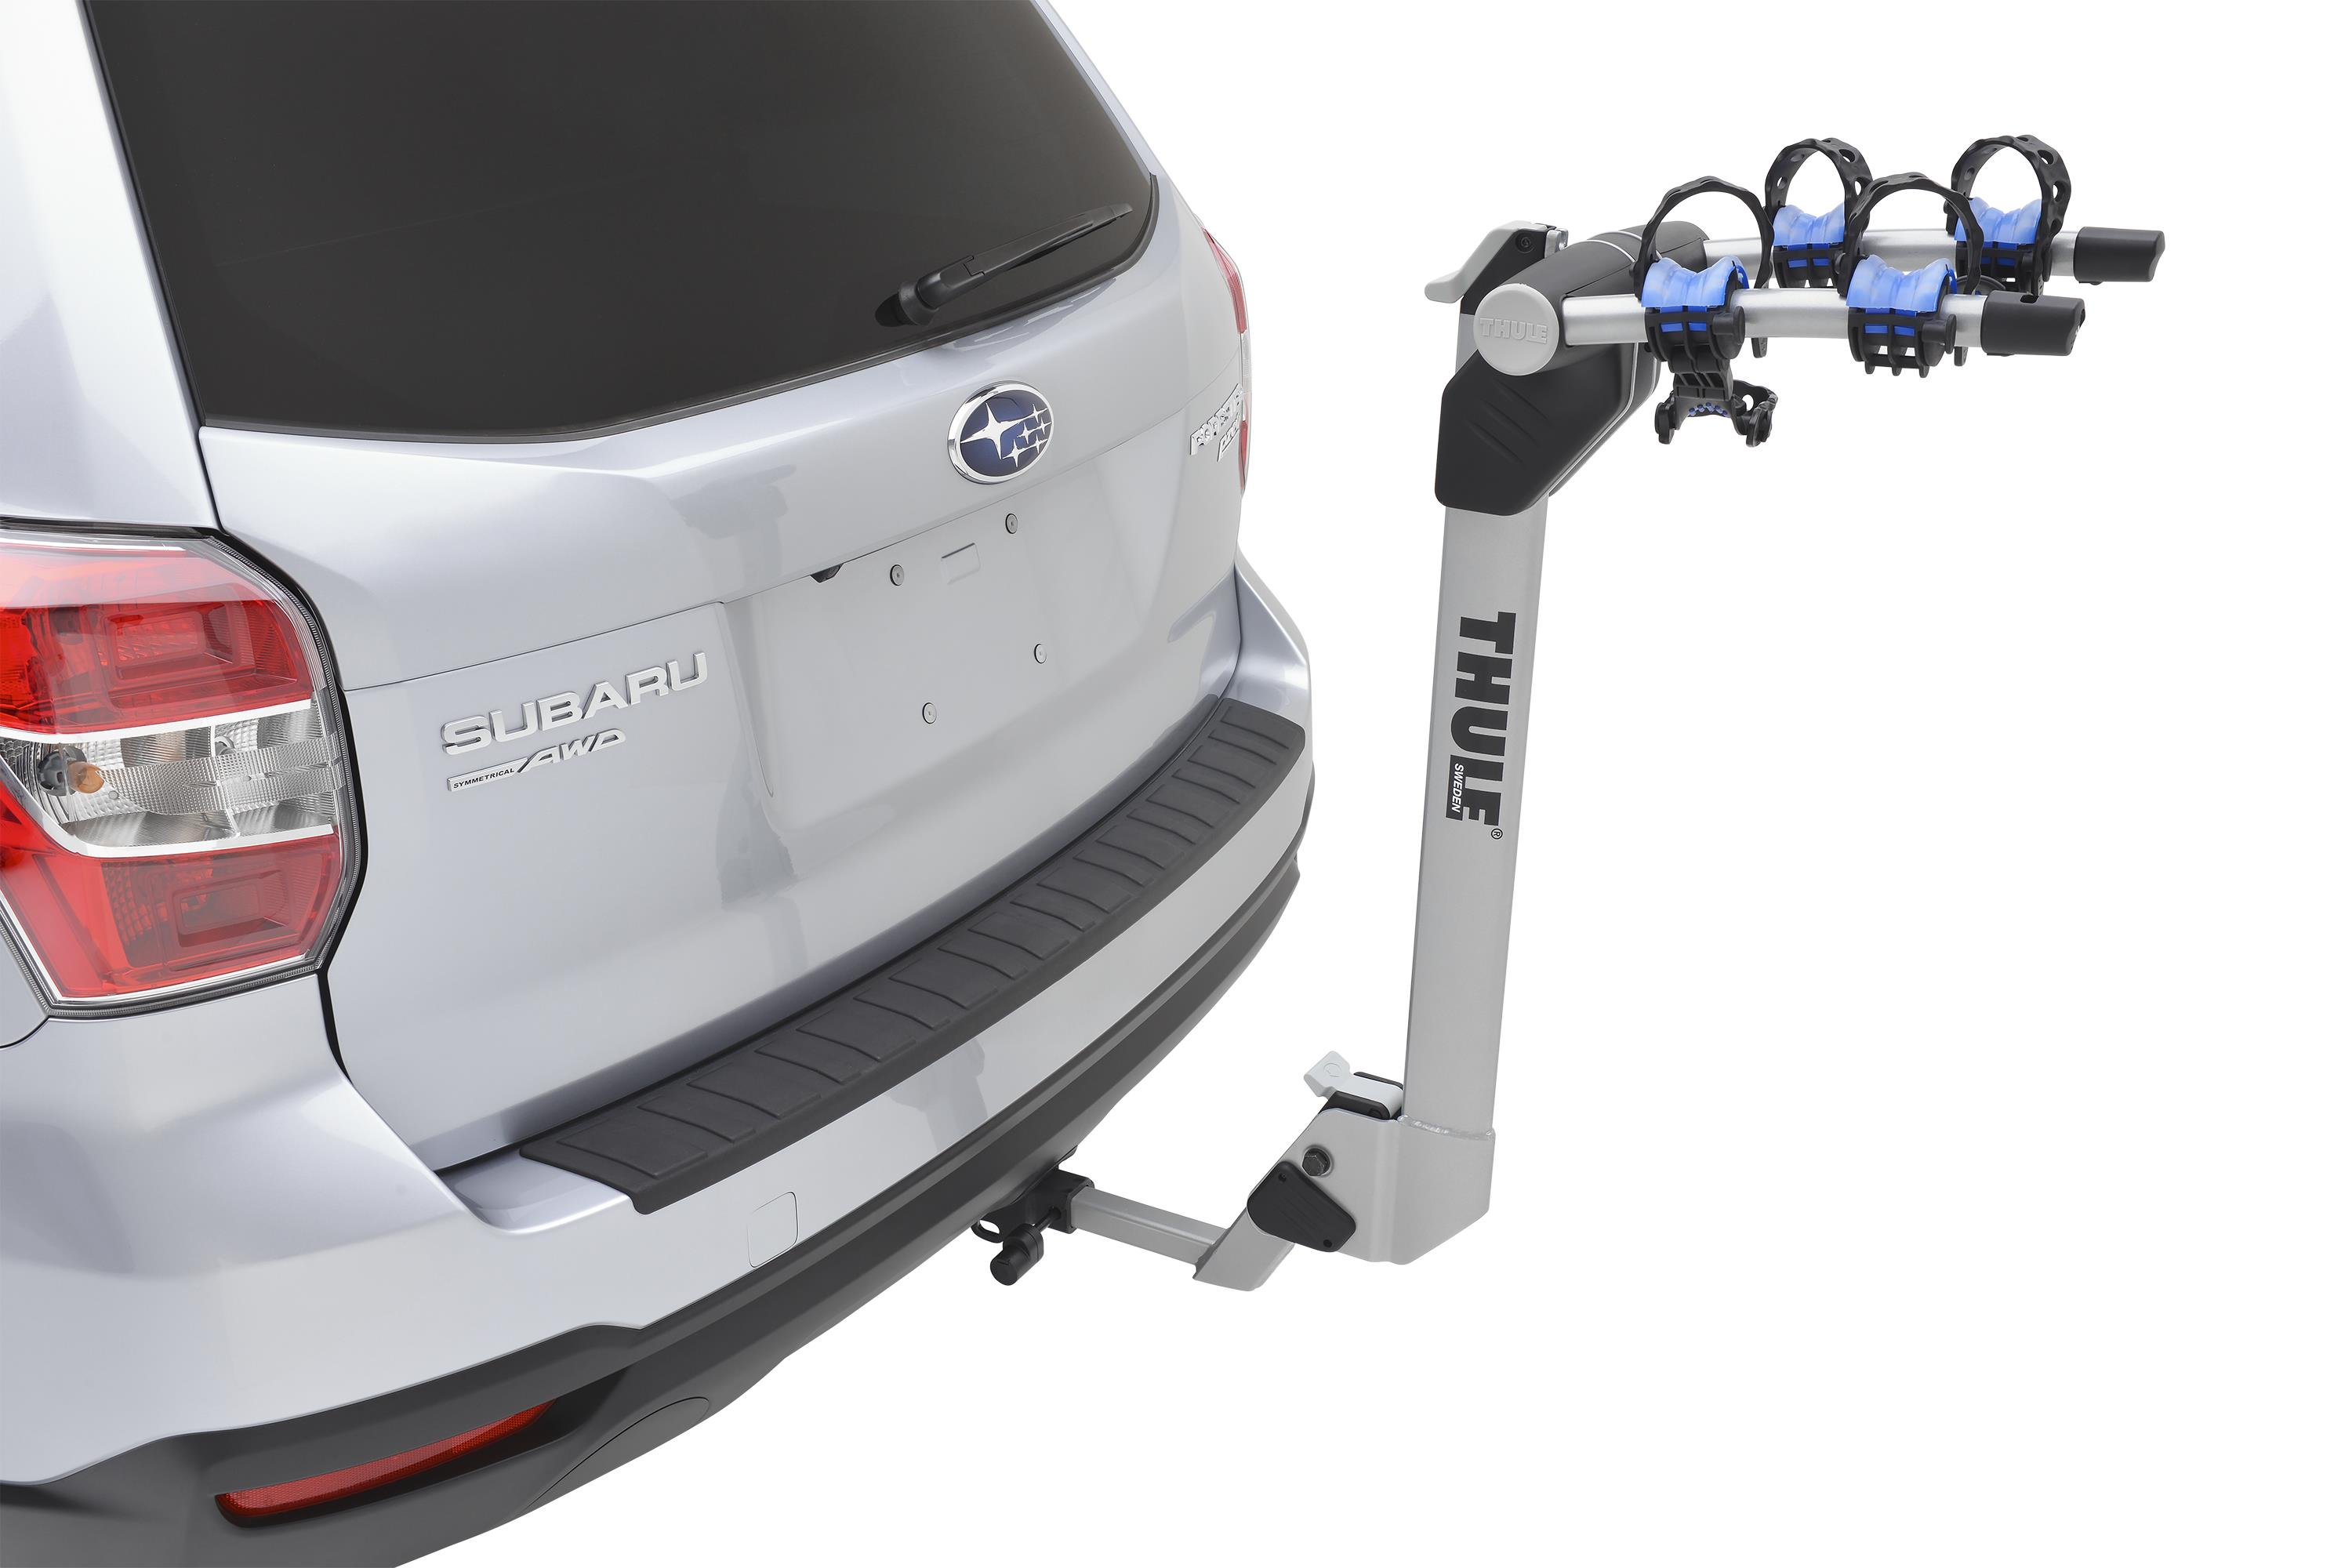 2017 Subaru Outback Hitch Mounted Bike Carrier Thule